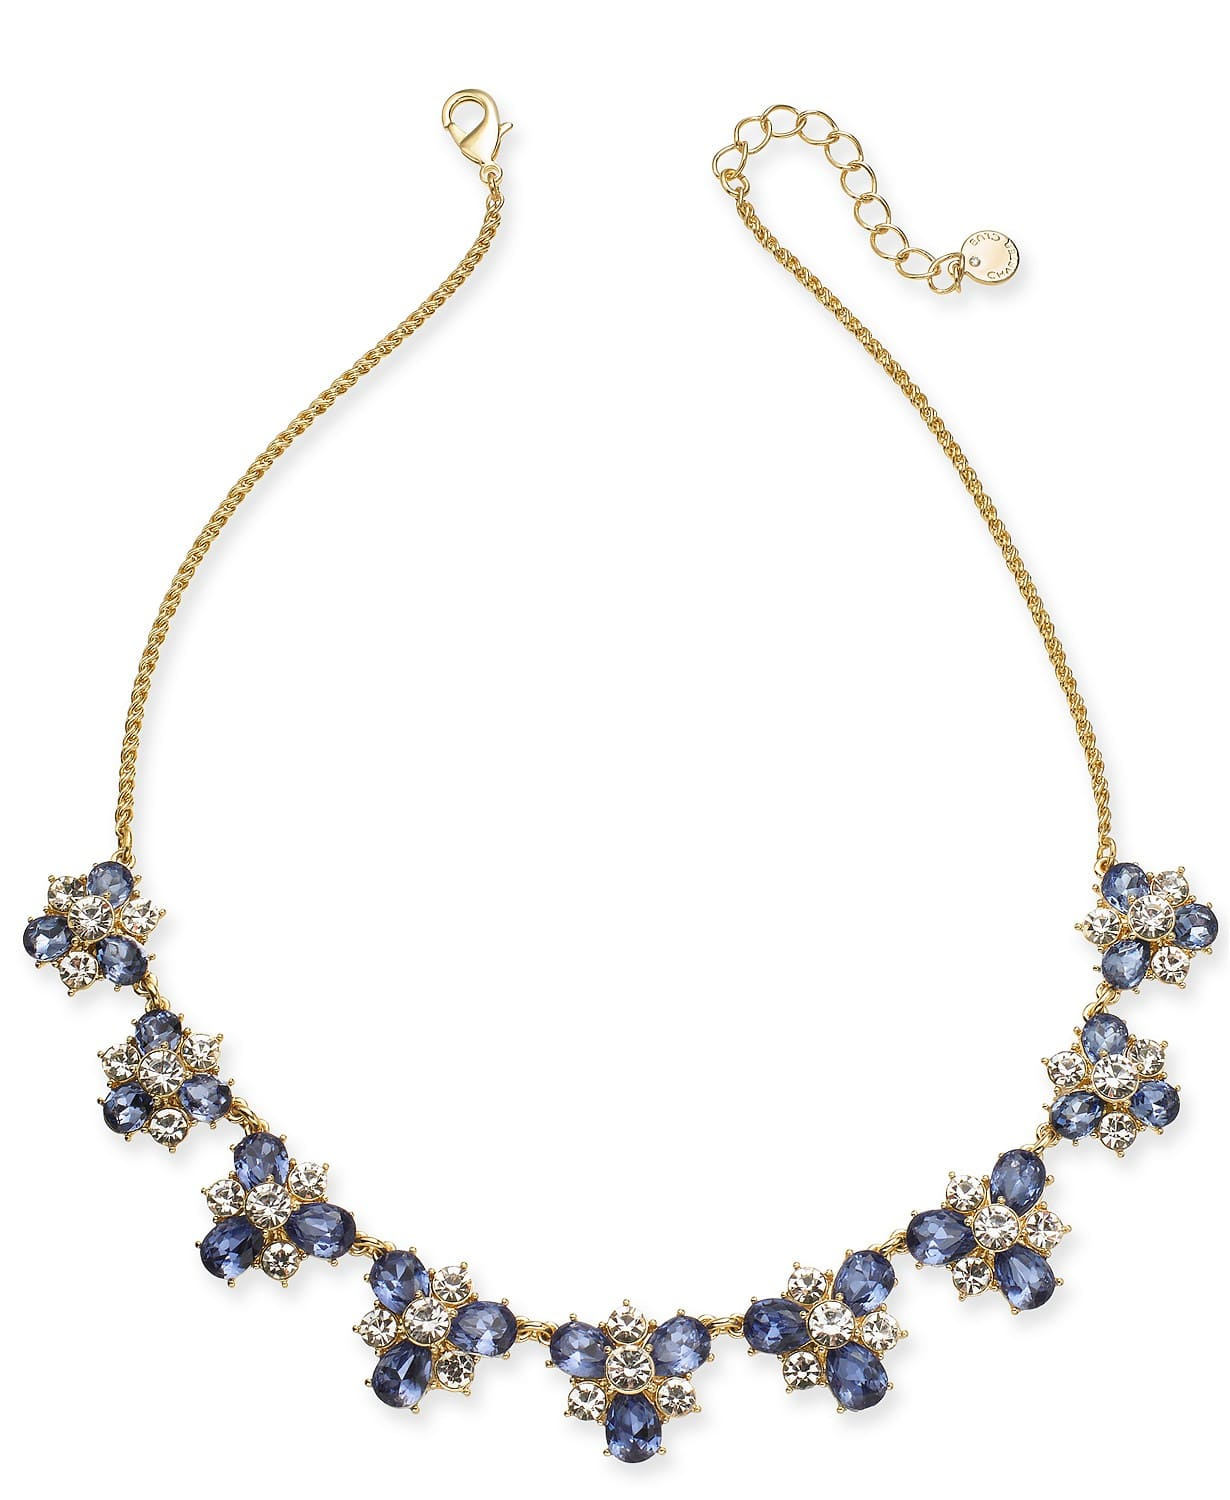 Macys Fashion Jewelry: Charter Club Gold-Tone Crystal & Stone Cluster Necklace $5, Imitation Pearl Three-Row Collar Necklace $5, More + FS on $25